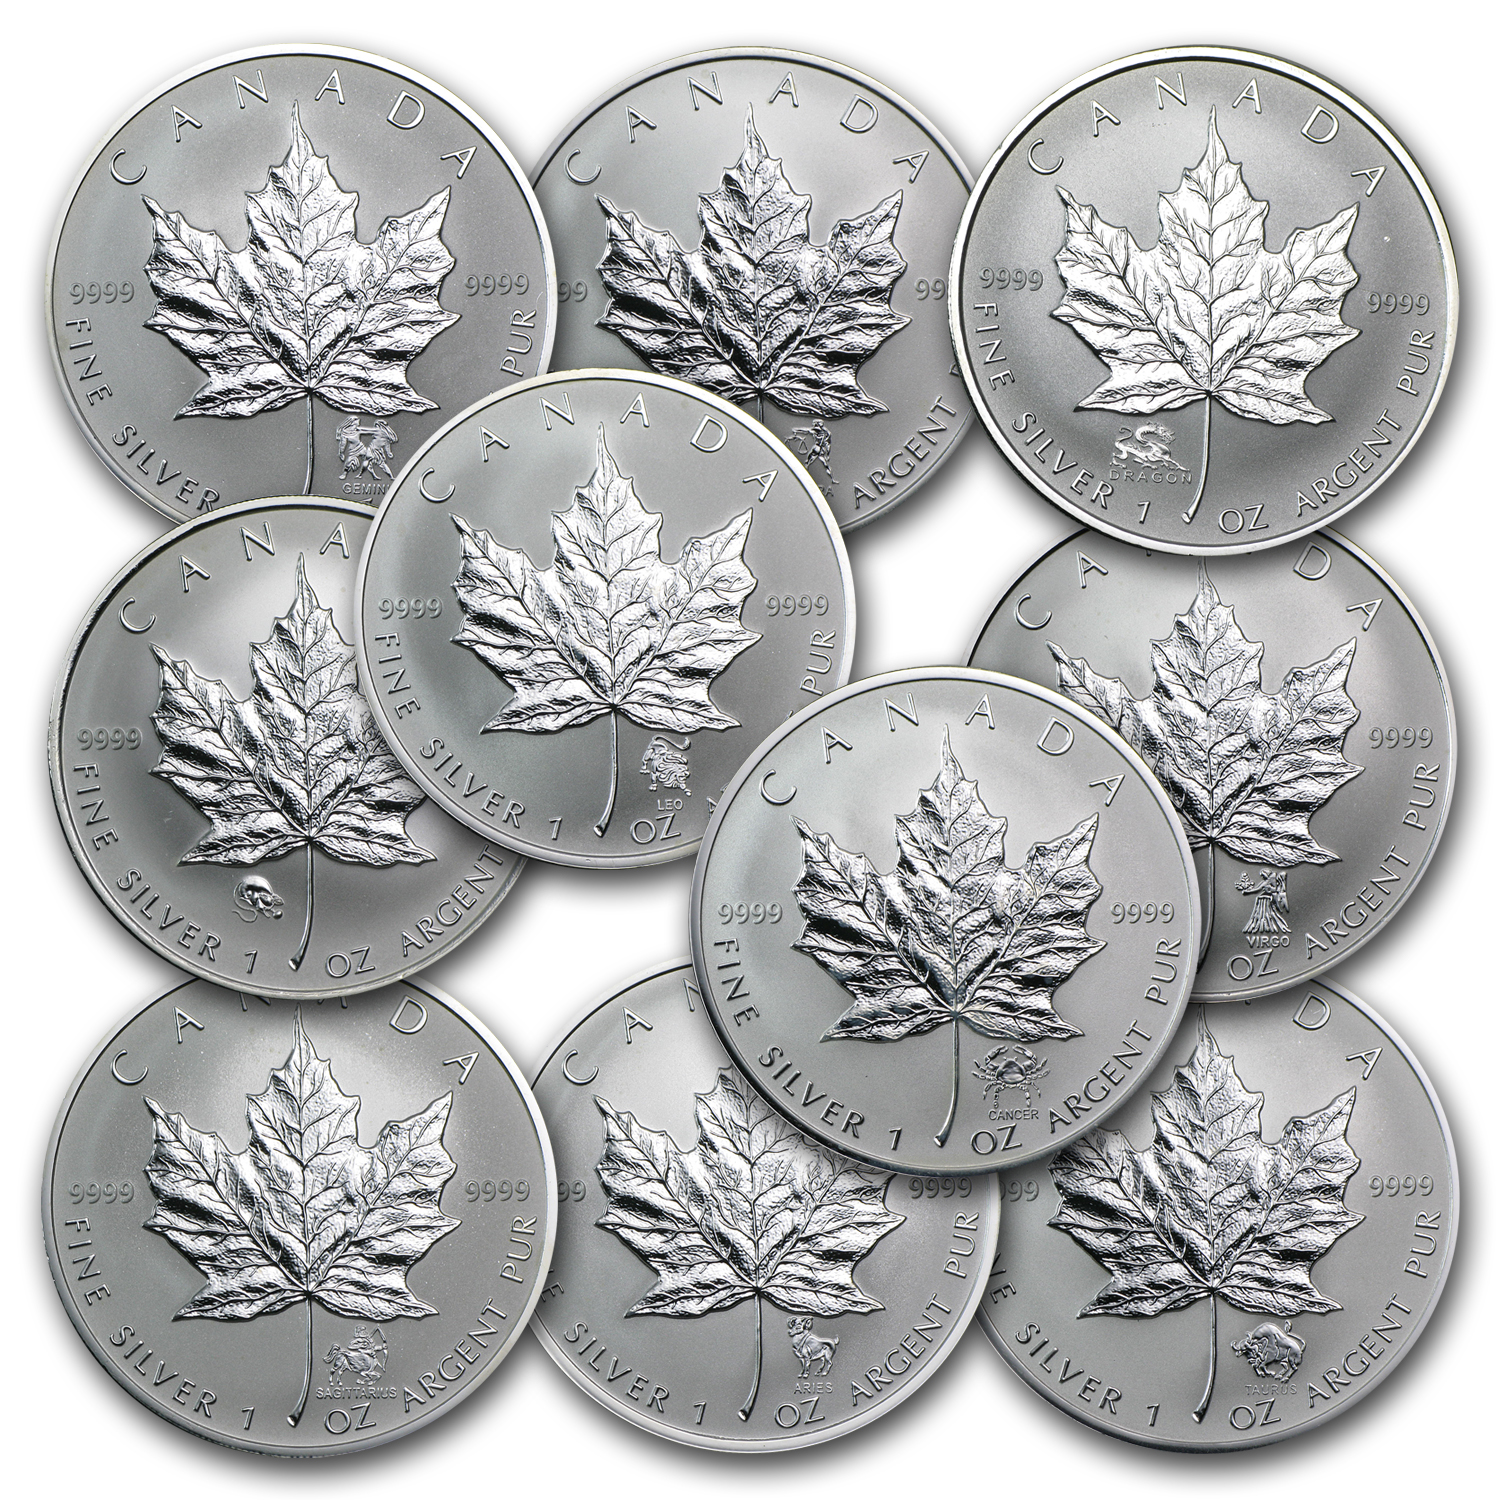 10 Different Canada 1 oz Silver Maple Leaf Privy Mark Coins